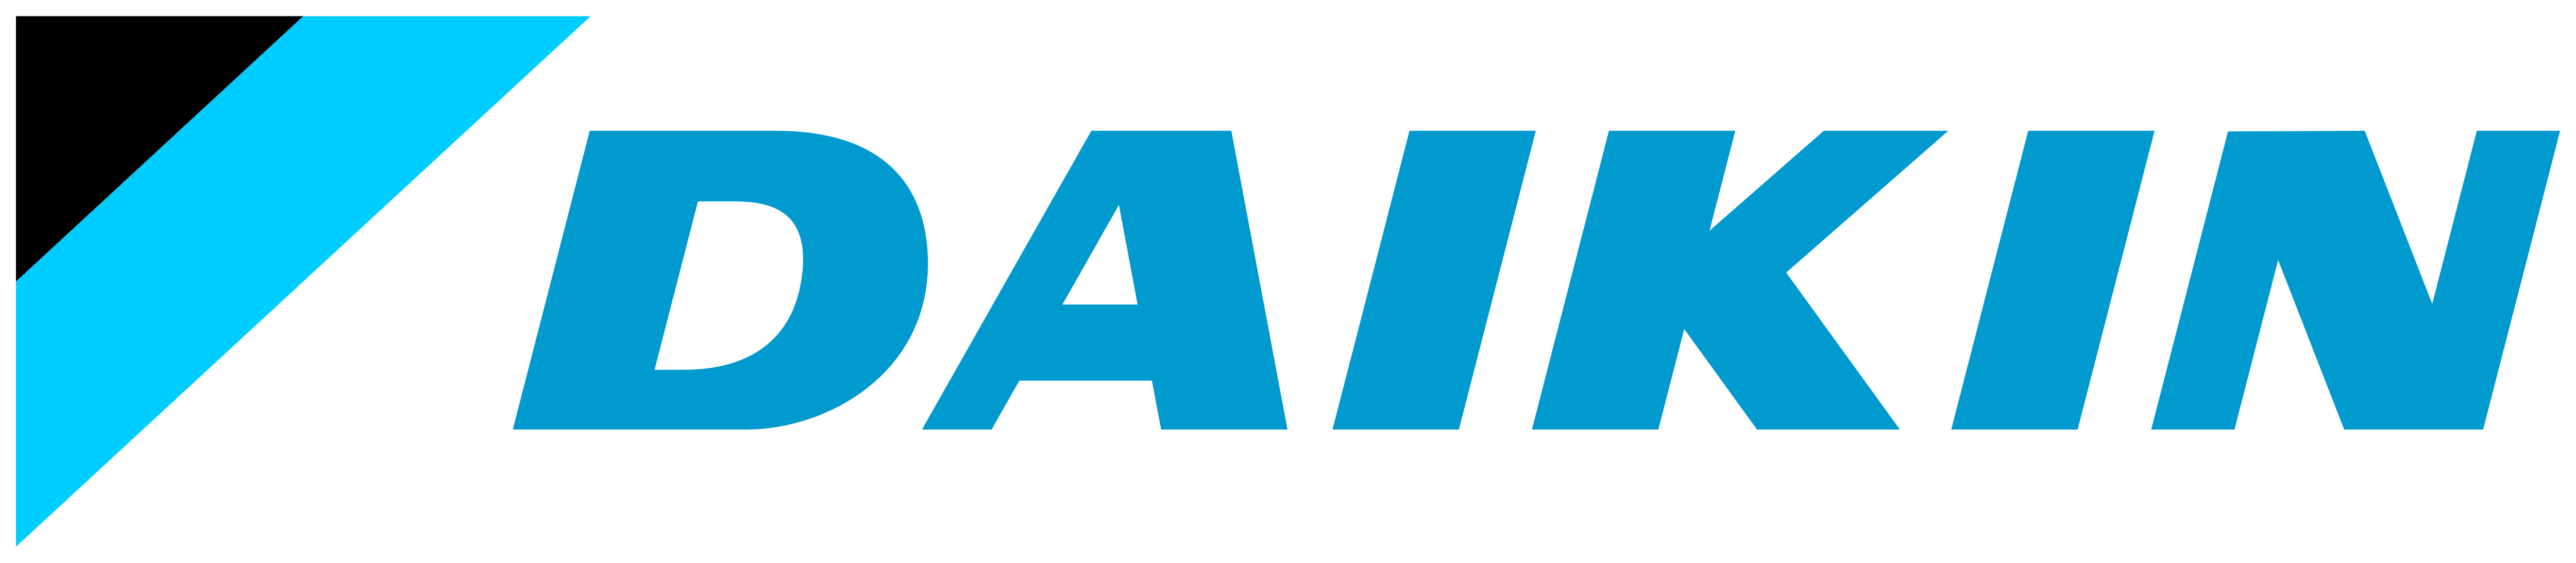 Daikin Logo Wallpaper